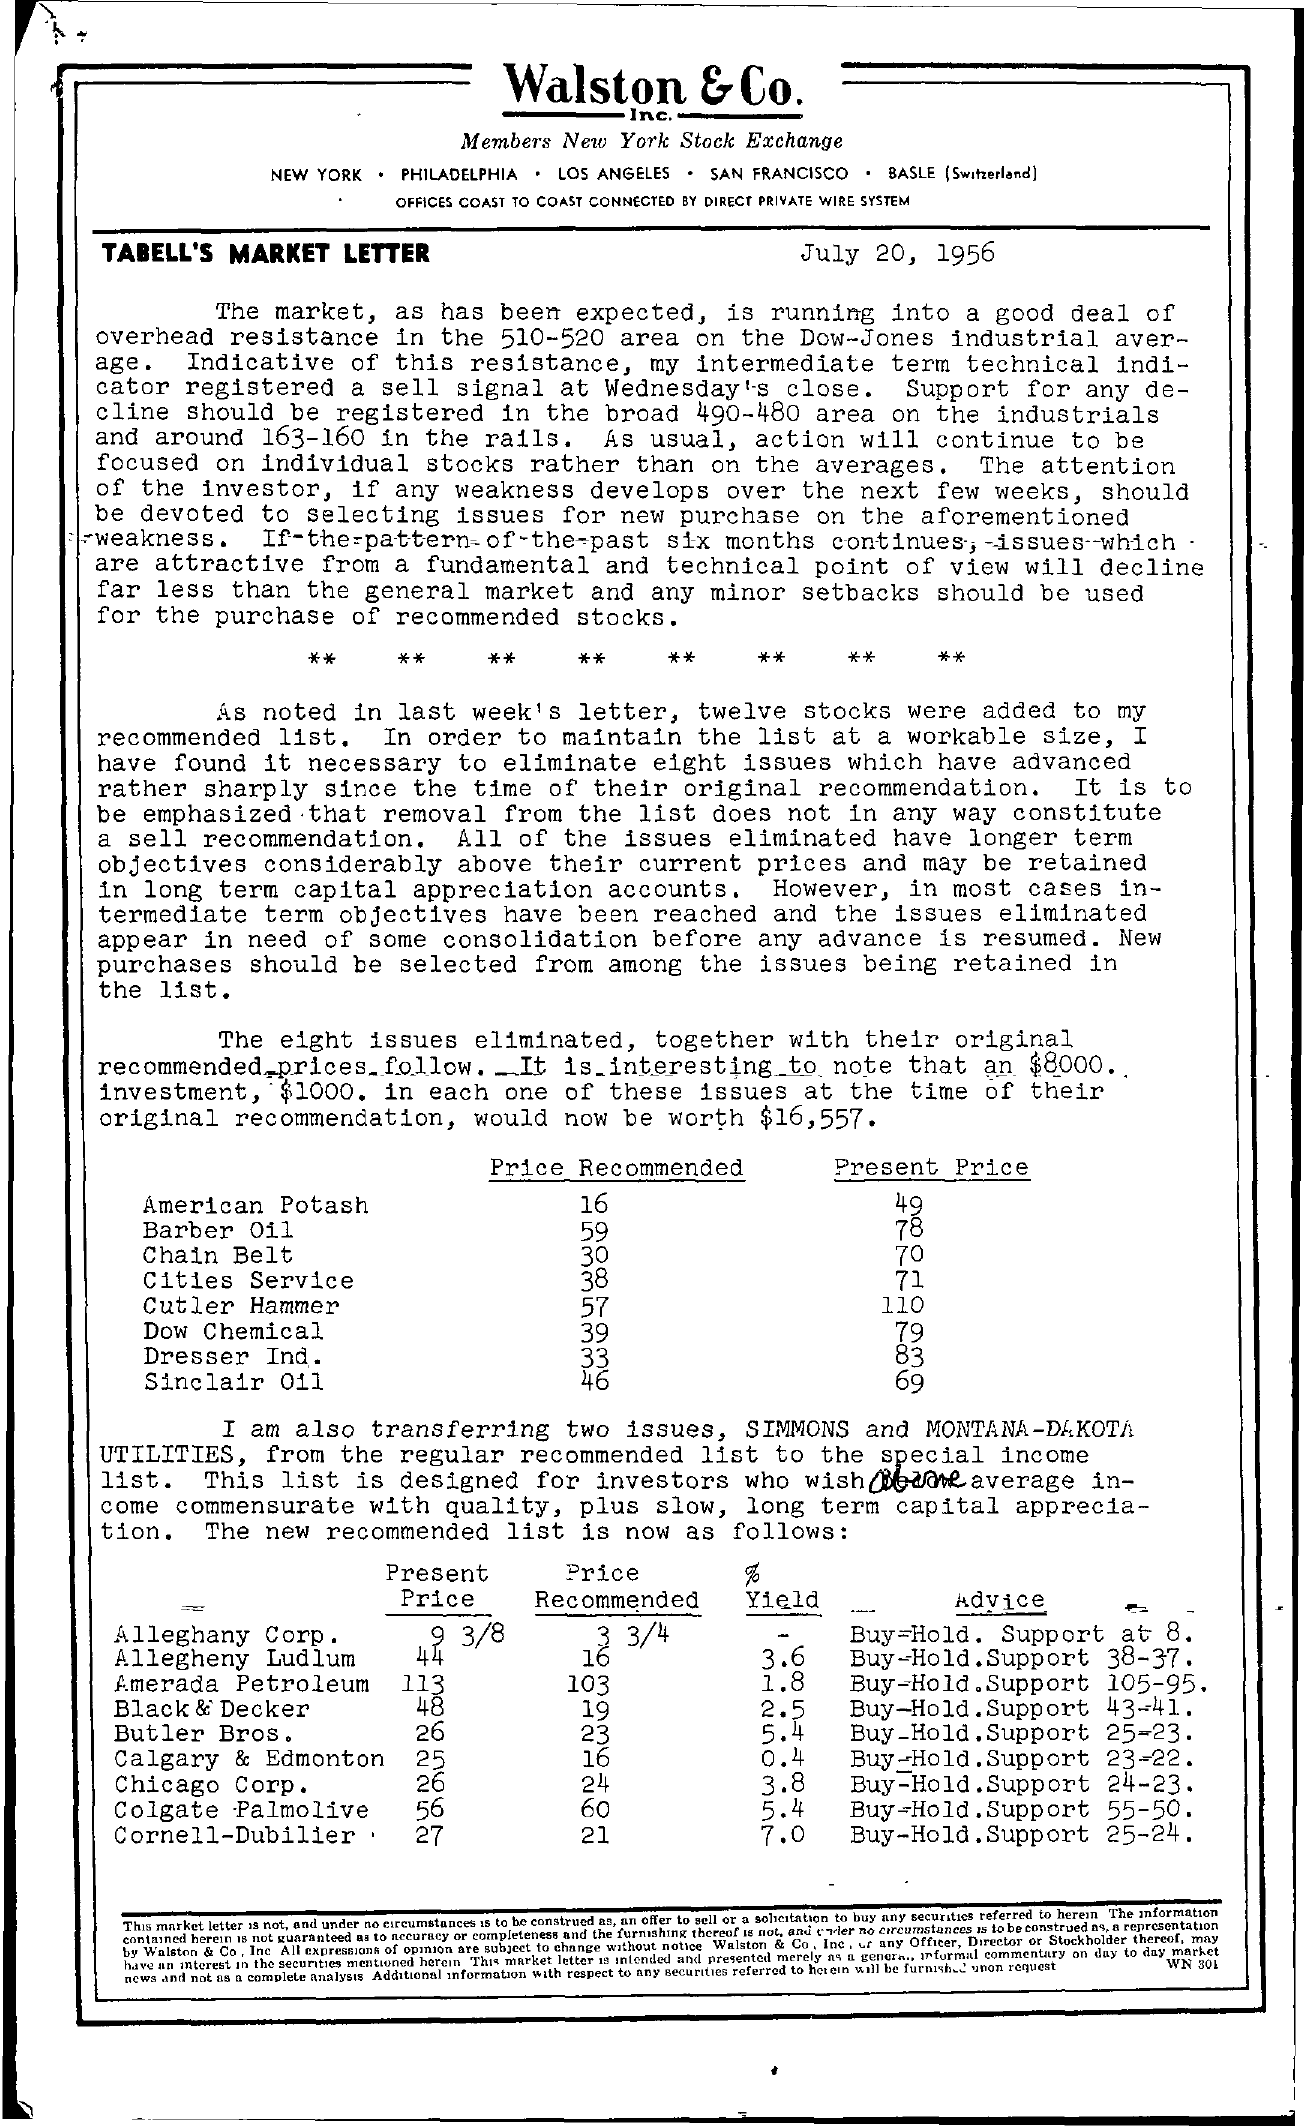 Tabell's Market Letter - July 20, 1956 page 1